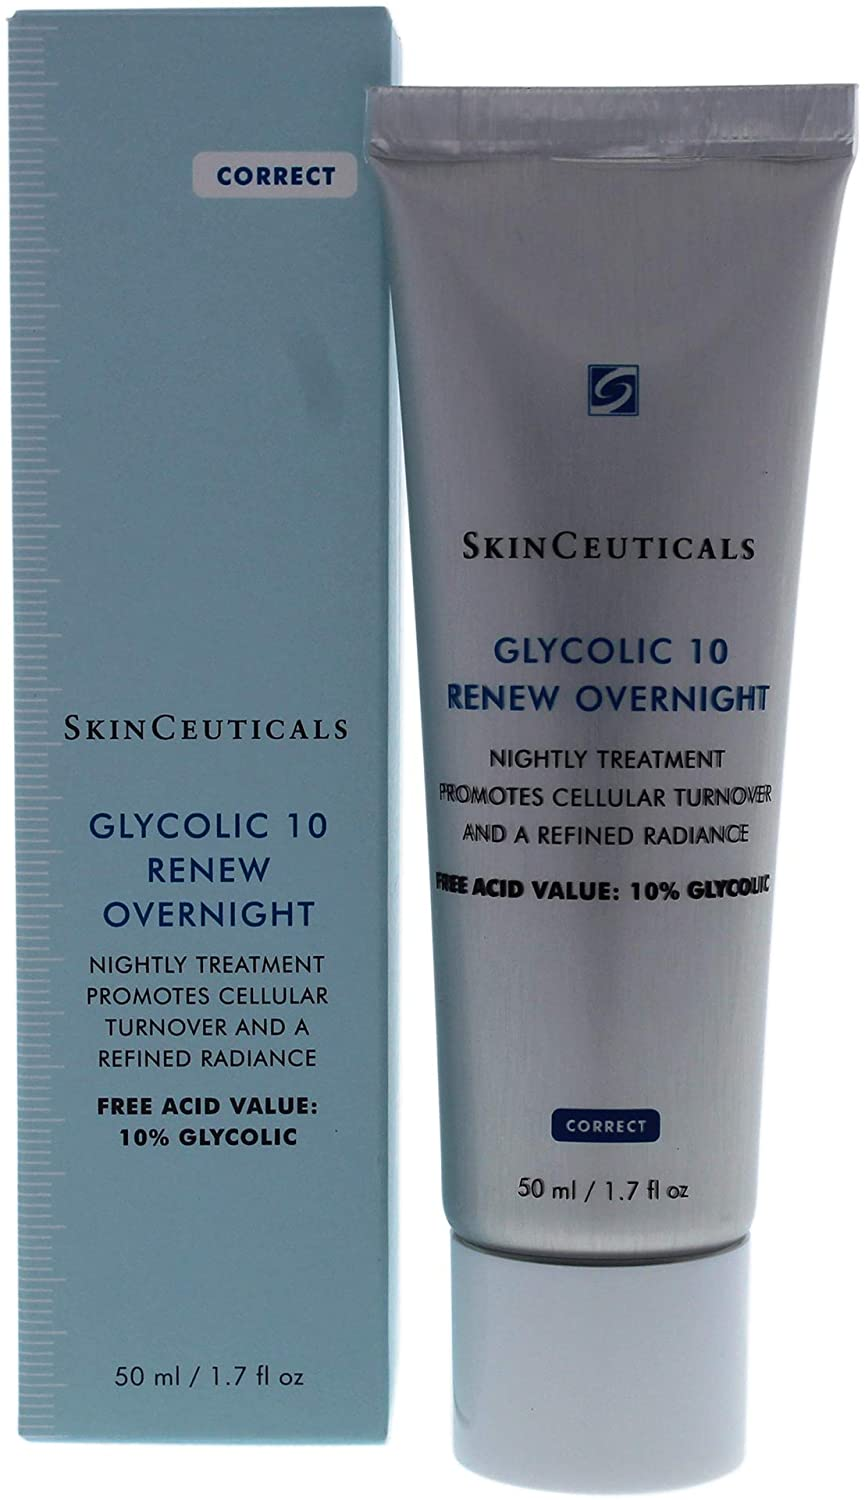 SkinCeuticals Glycolic 10 Renew Over night 50 ml